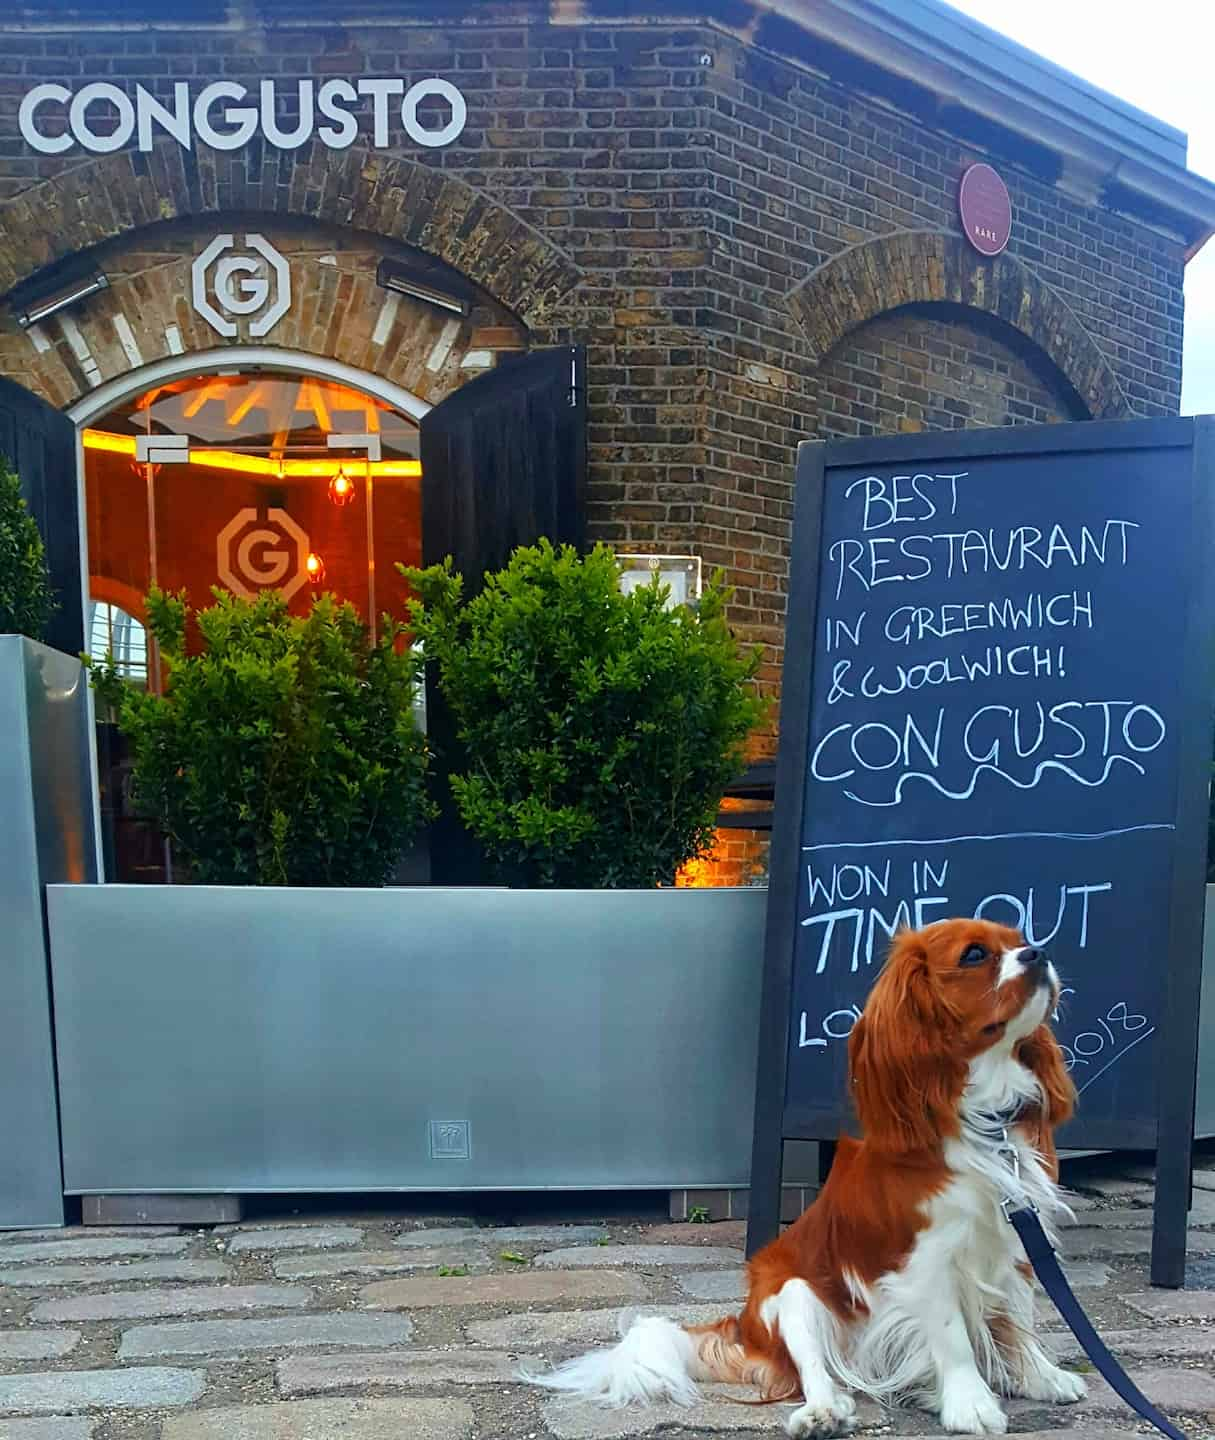 My Dog Friendly London by Amber The Cav - Con Gusto